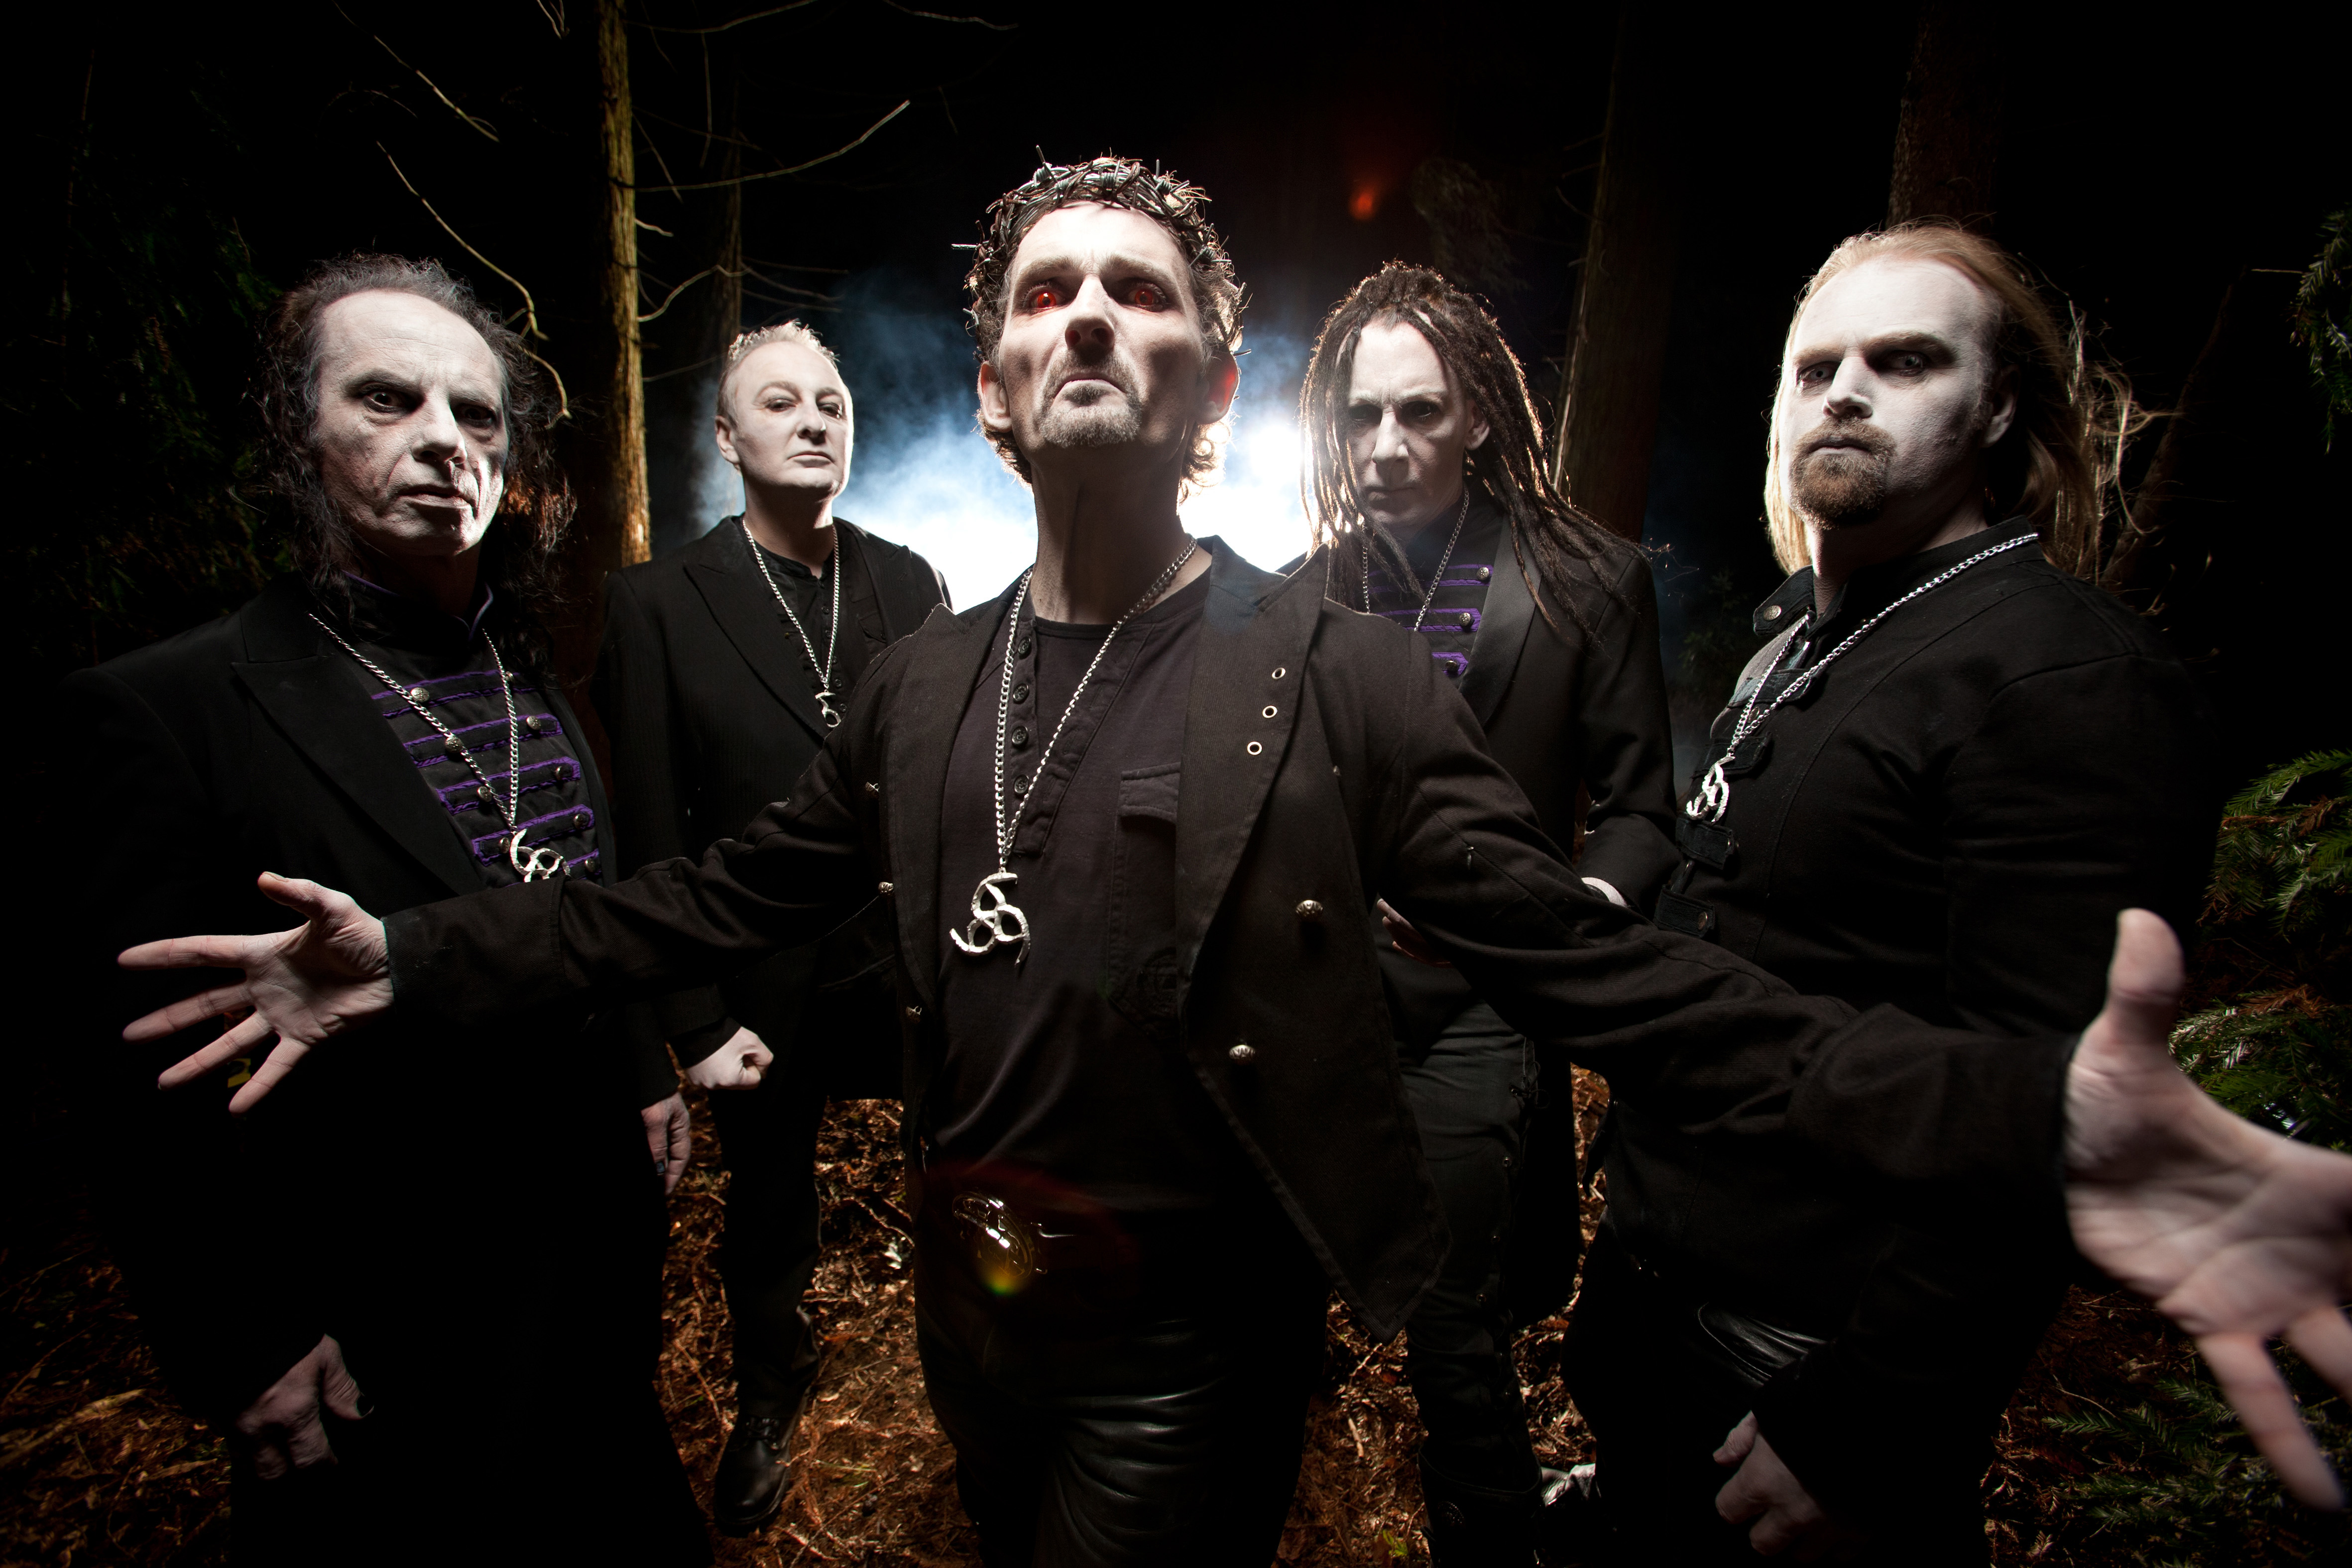 Hell :: Details on their new album